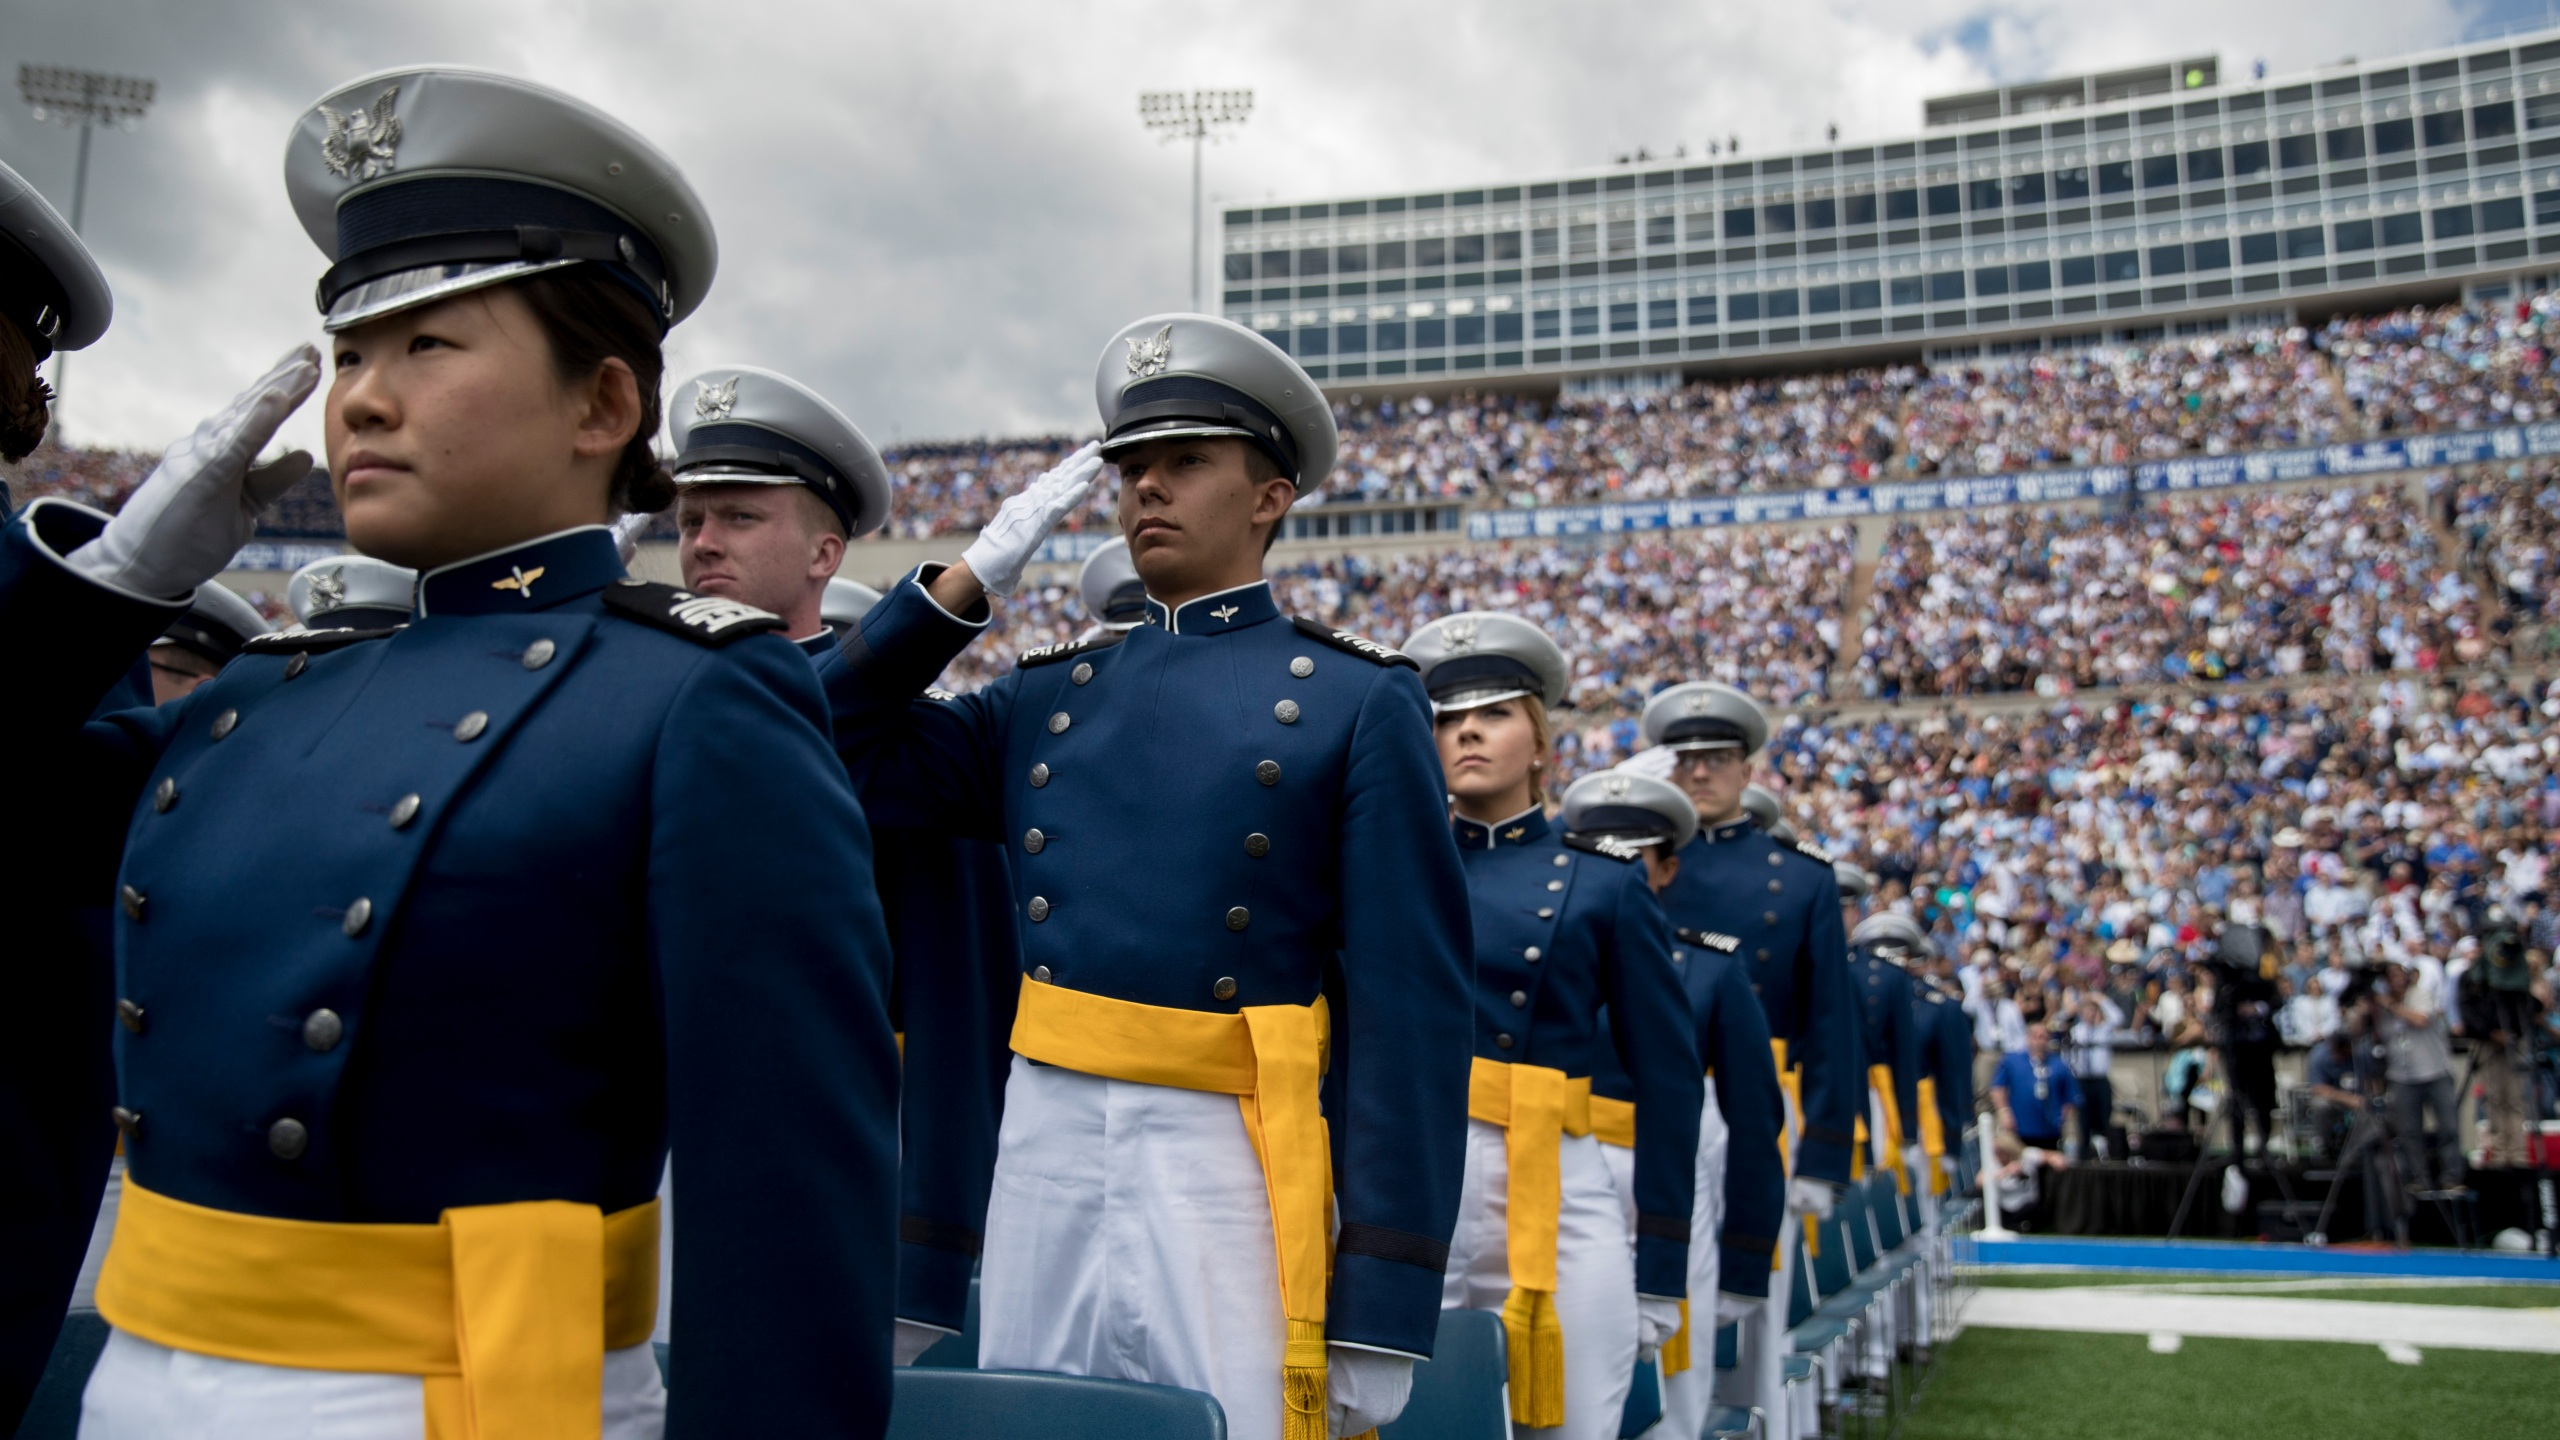 Air Force Cadets salute during the 2019 United States Air Force Academy Graduation Ceremony at Falcon Stadium, Thursday, May 30, 2019, at the United States Air Force Academy, in Colorado Springs, Colo. (AP Photo/Andrew Harnik)